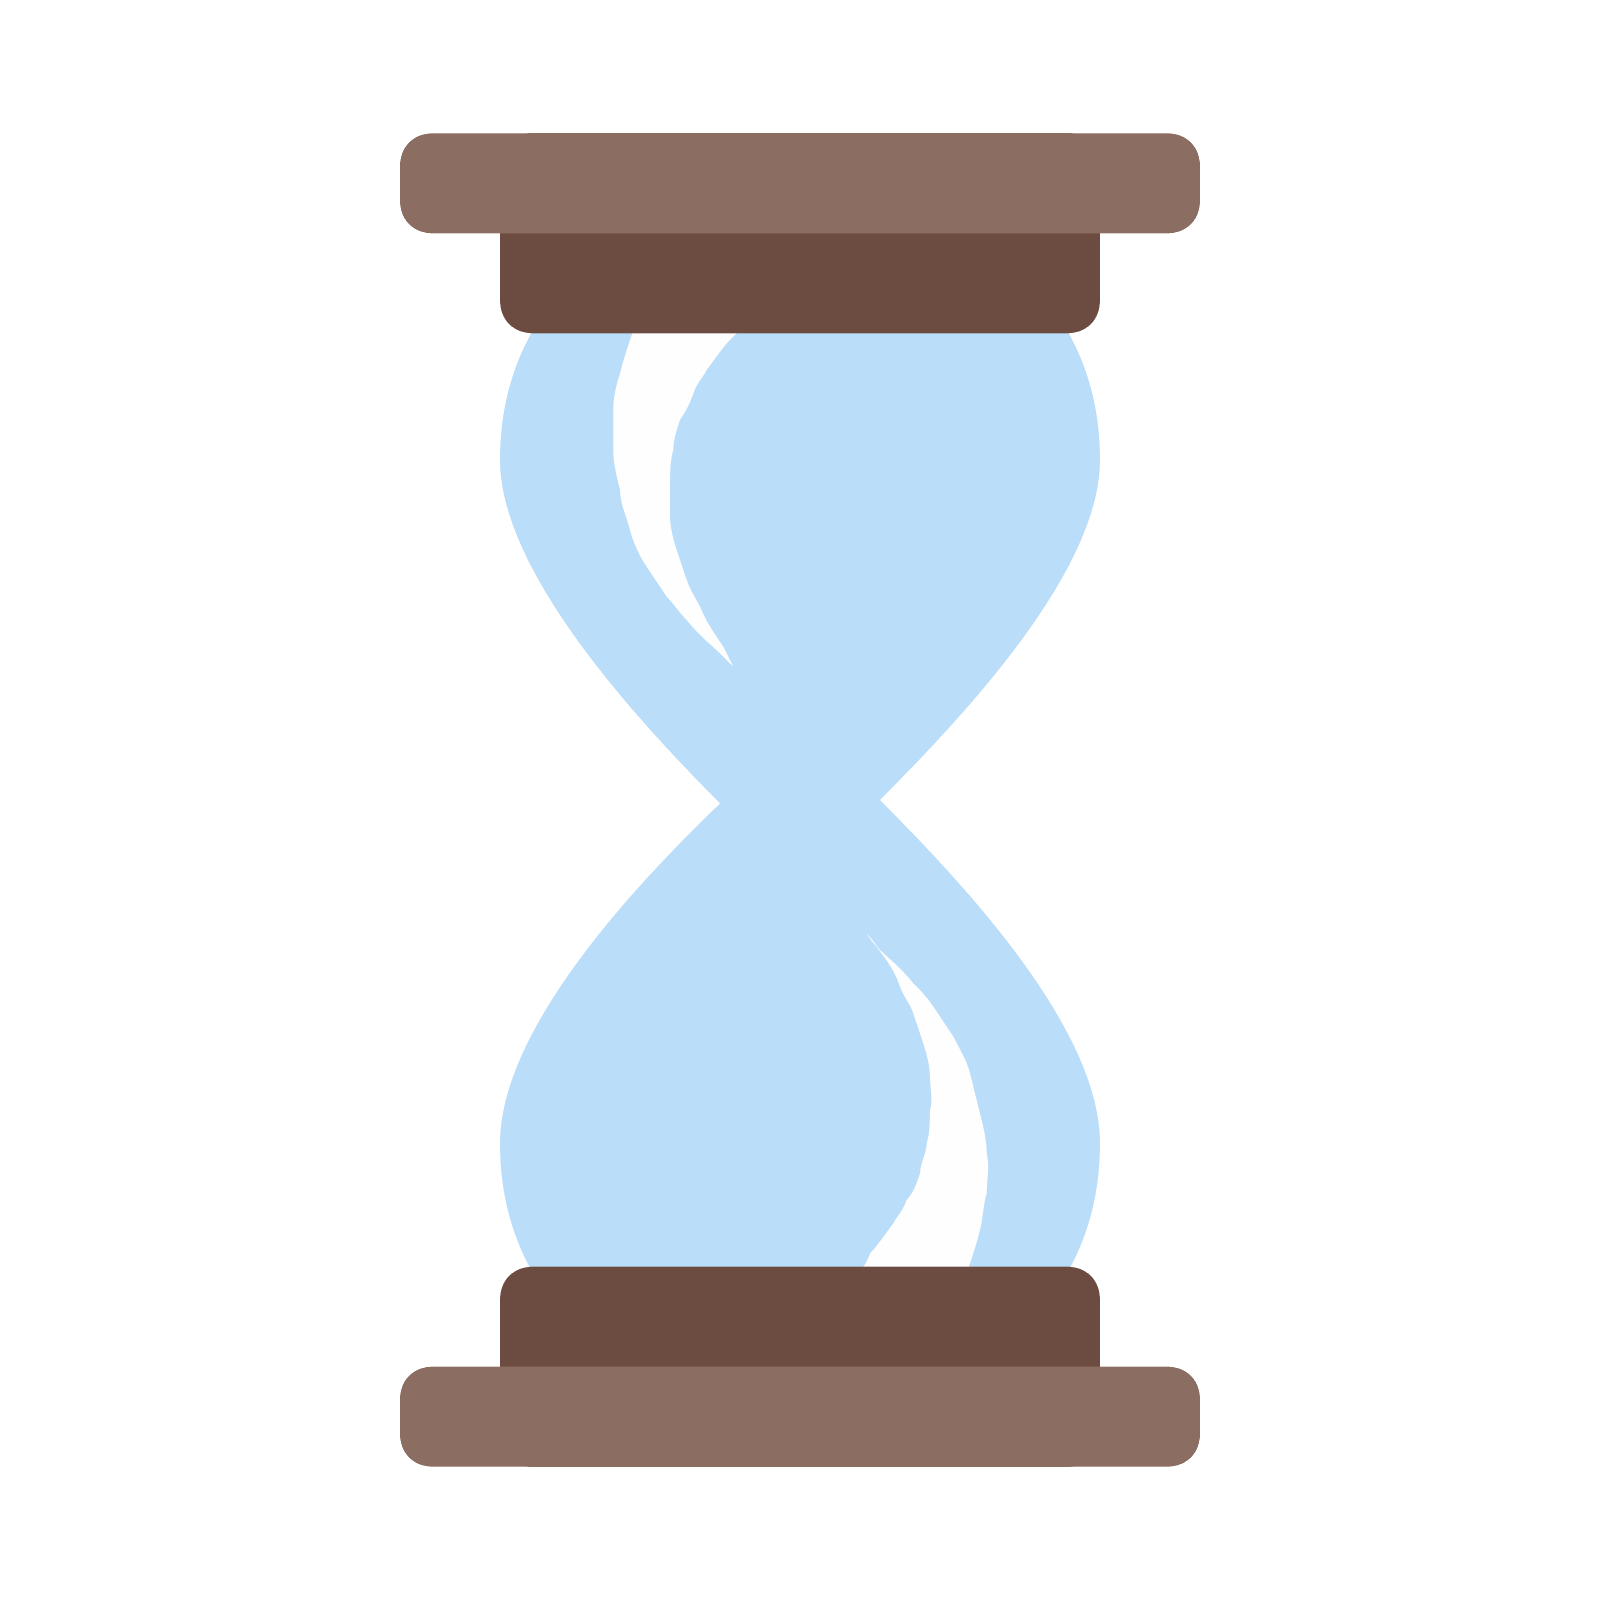 Hourglass clipart flat. Clip arts for free